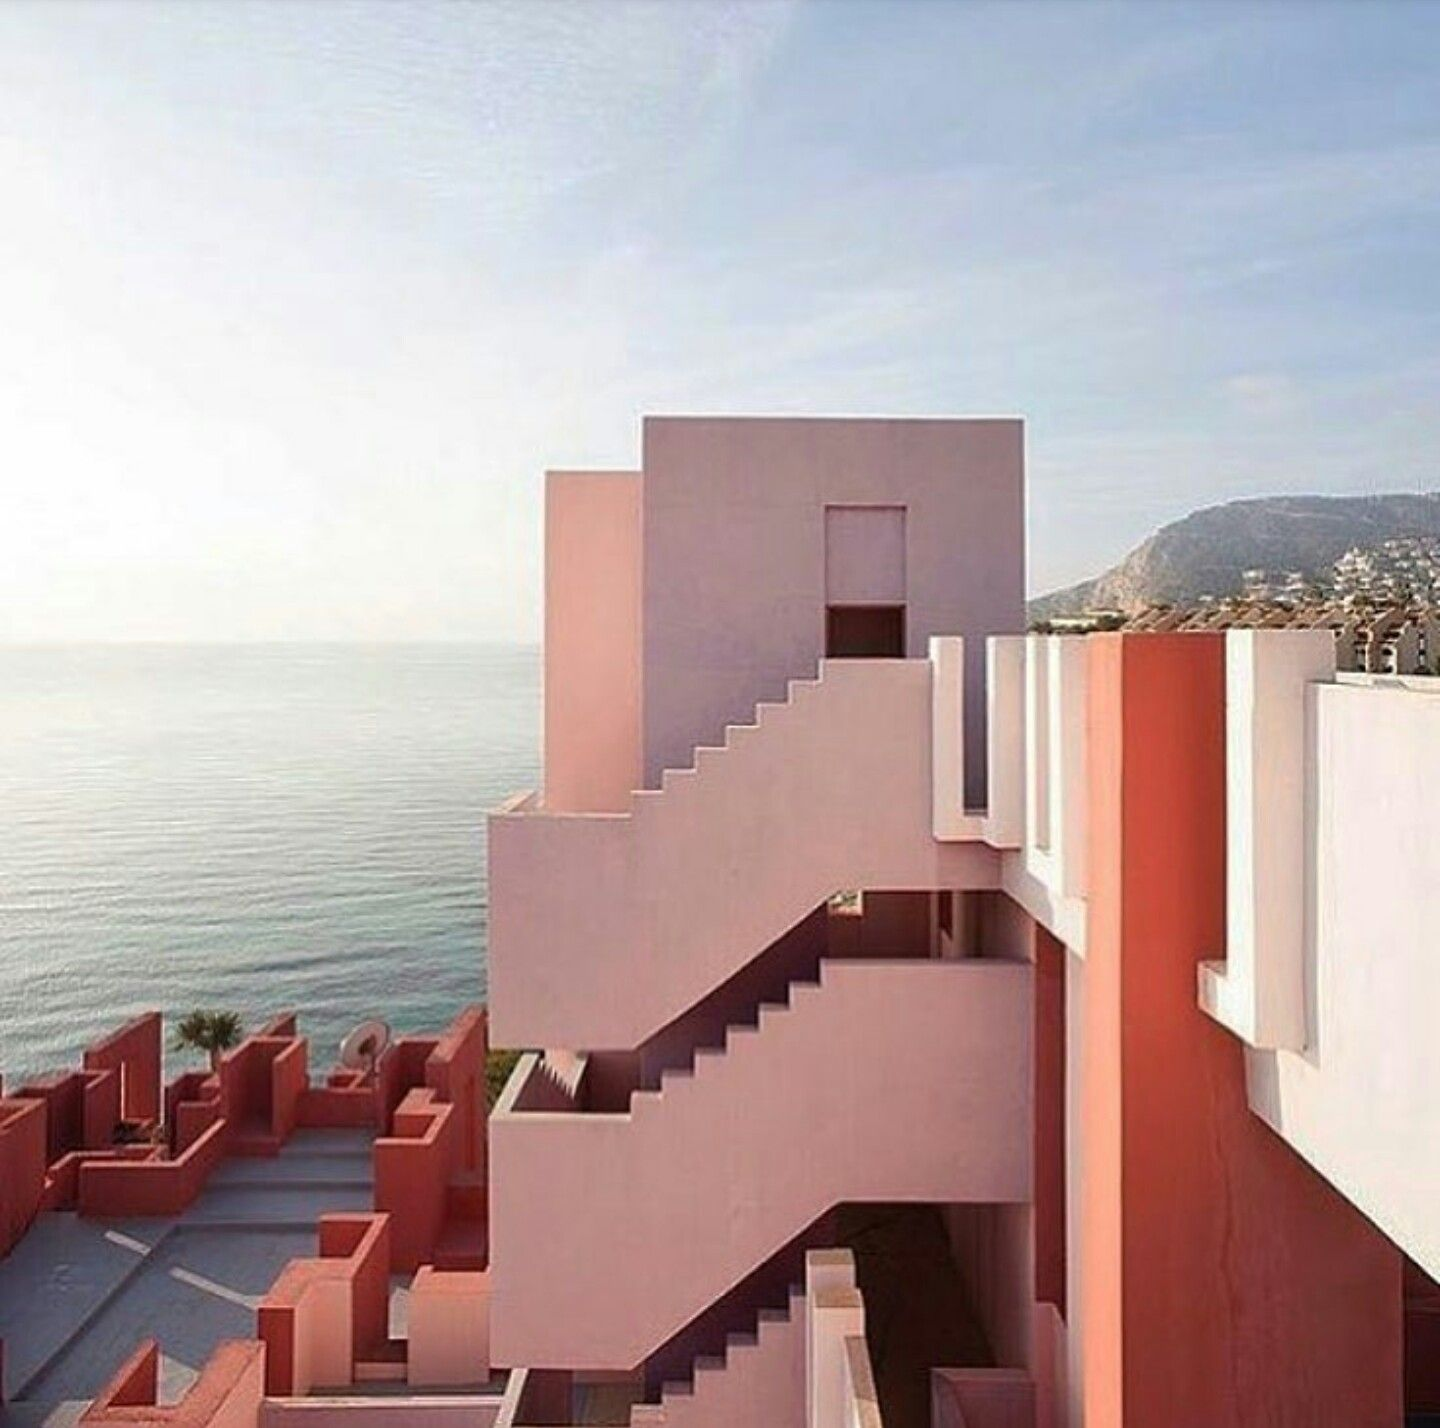 Pin by lora on Цвета | Pinterest | Architecture, Building and ...